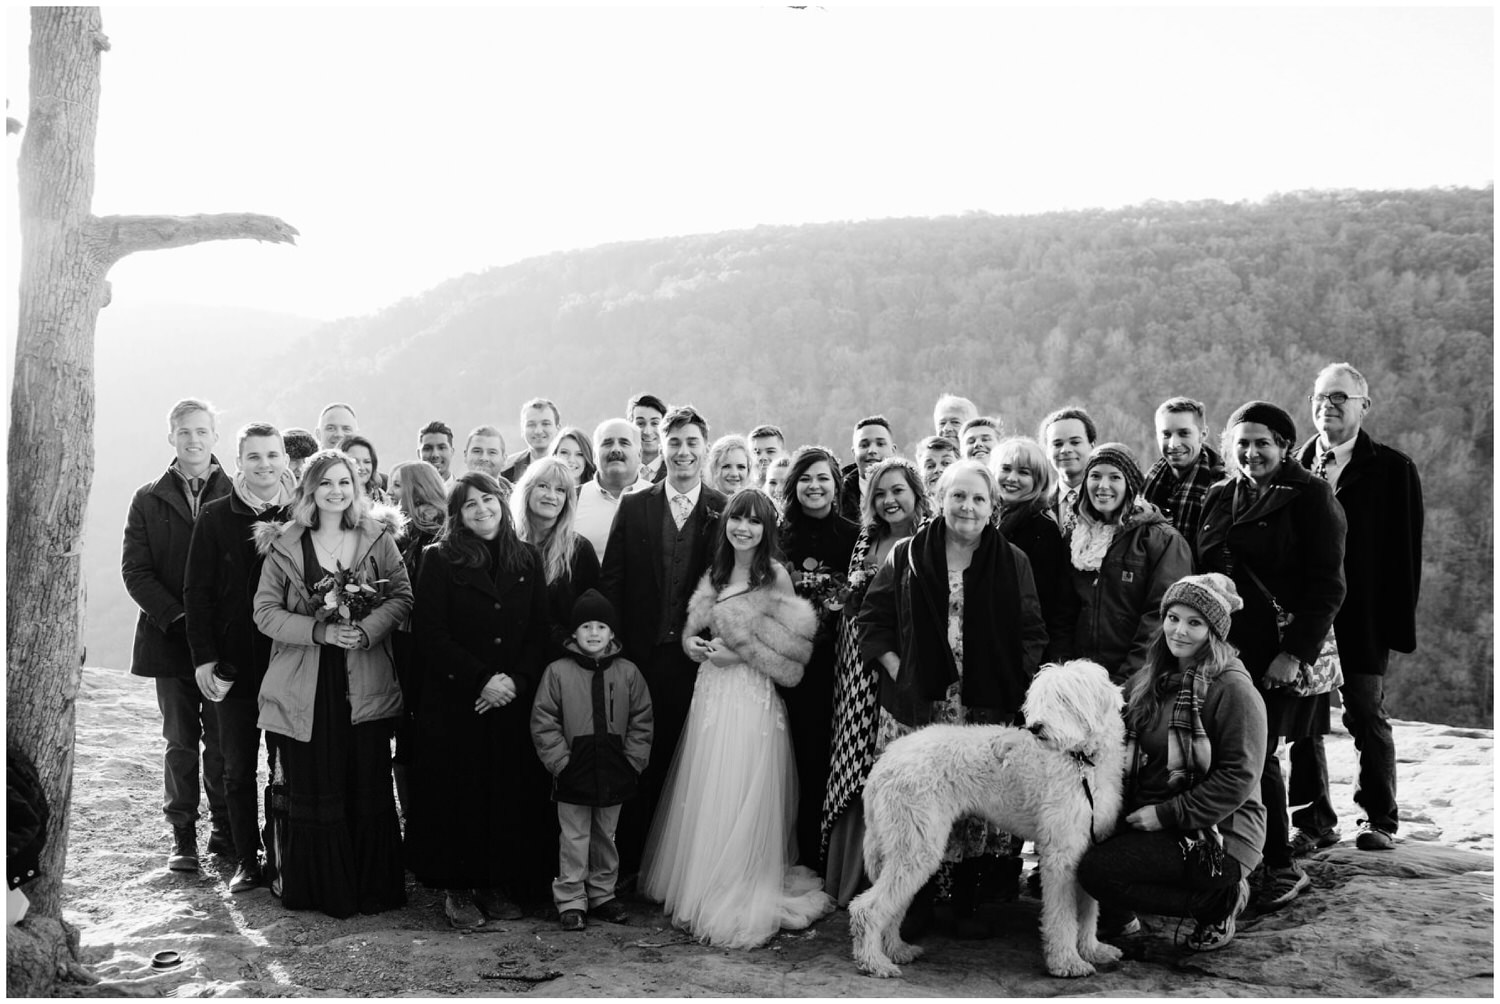 giant group photo at wedding